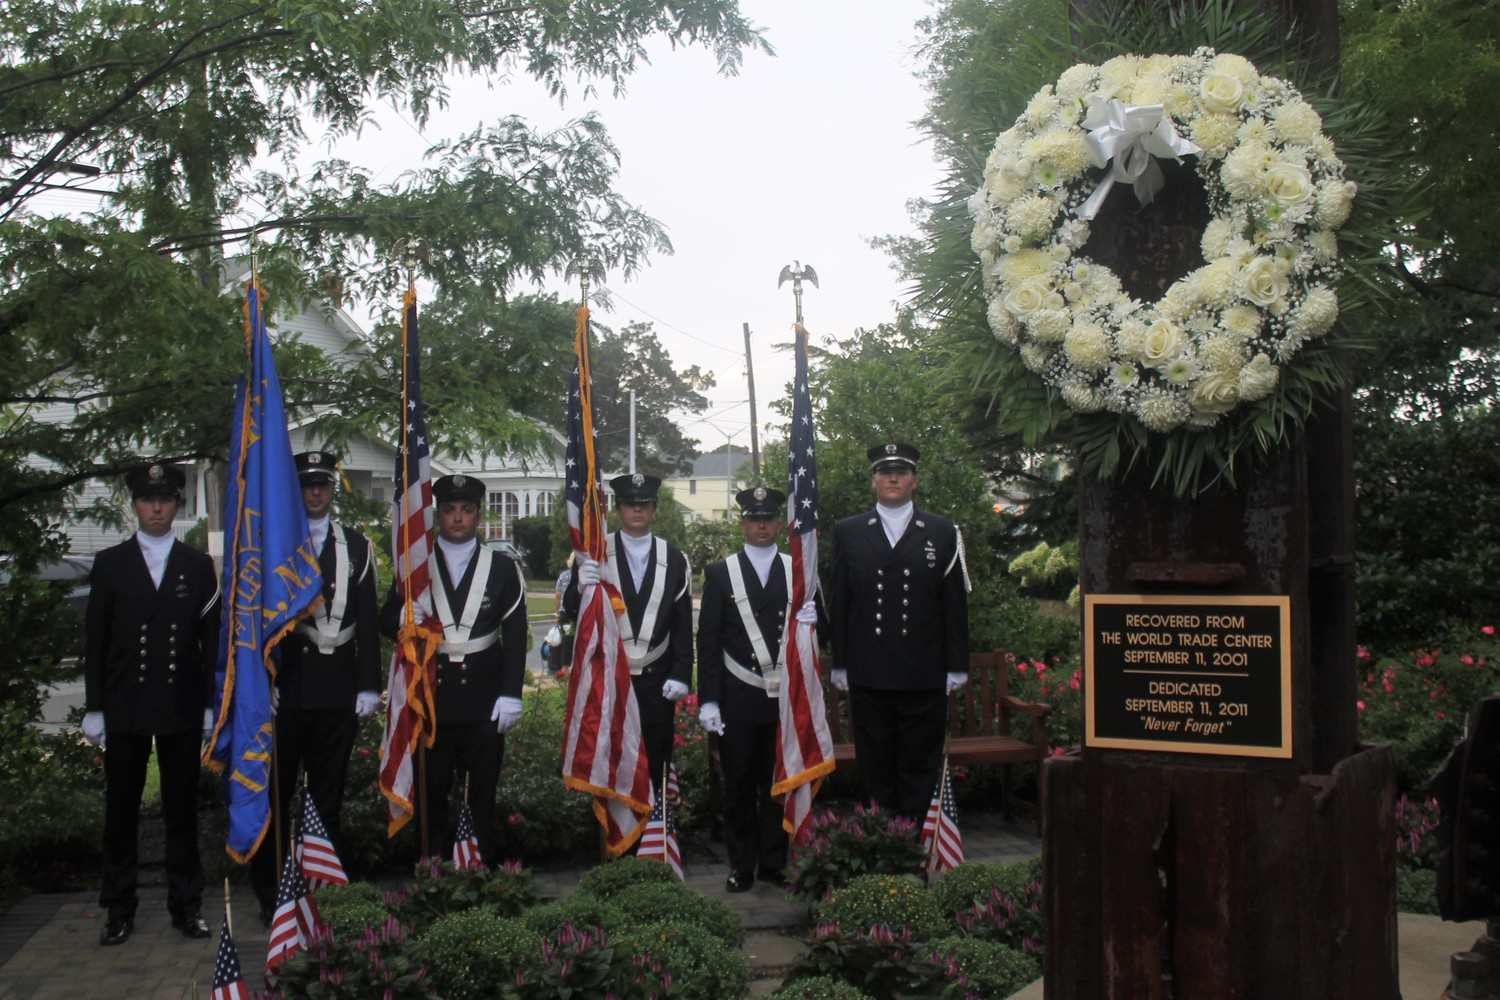 Lynbrook held its 9/11 memorial ceremony outside Village Hall on Tuesday. Members of the Lynbrook Fire Department's color guard stood next to a piece of steel recovered from the World Trade Center after the terrorist attacks of Sept. 11, 2001.